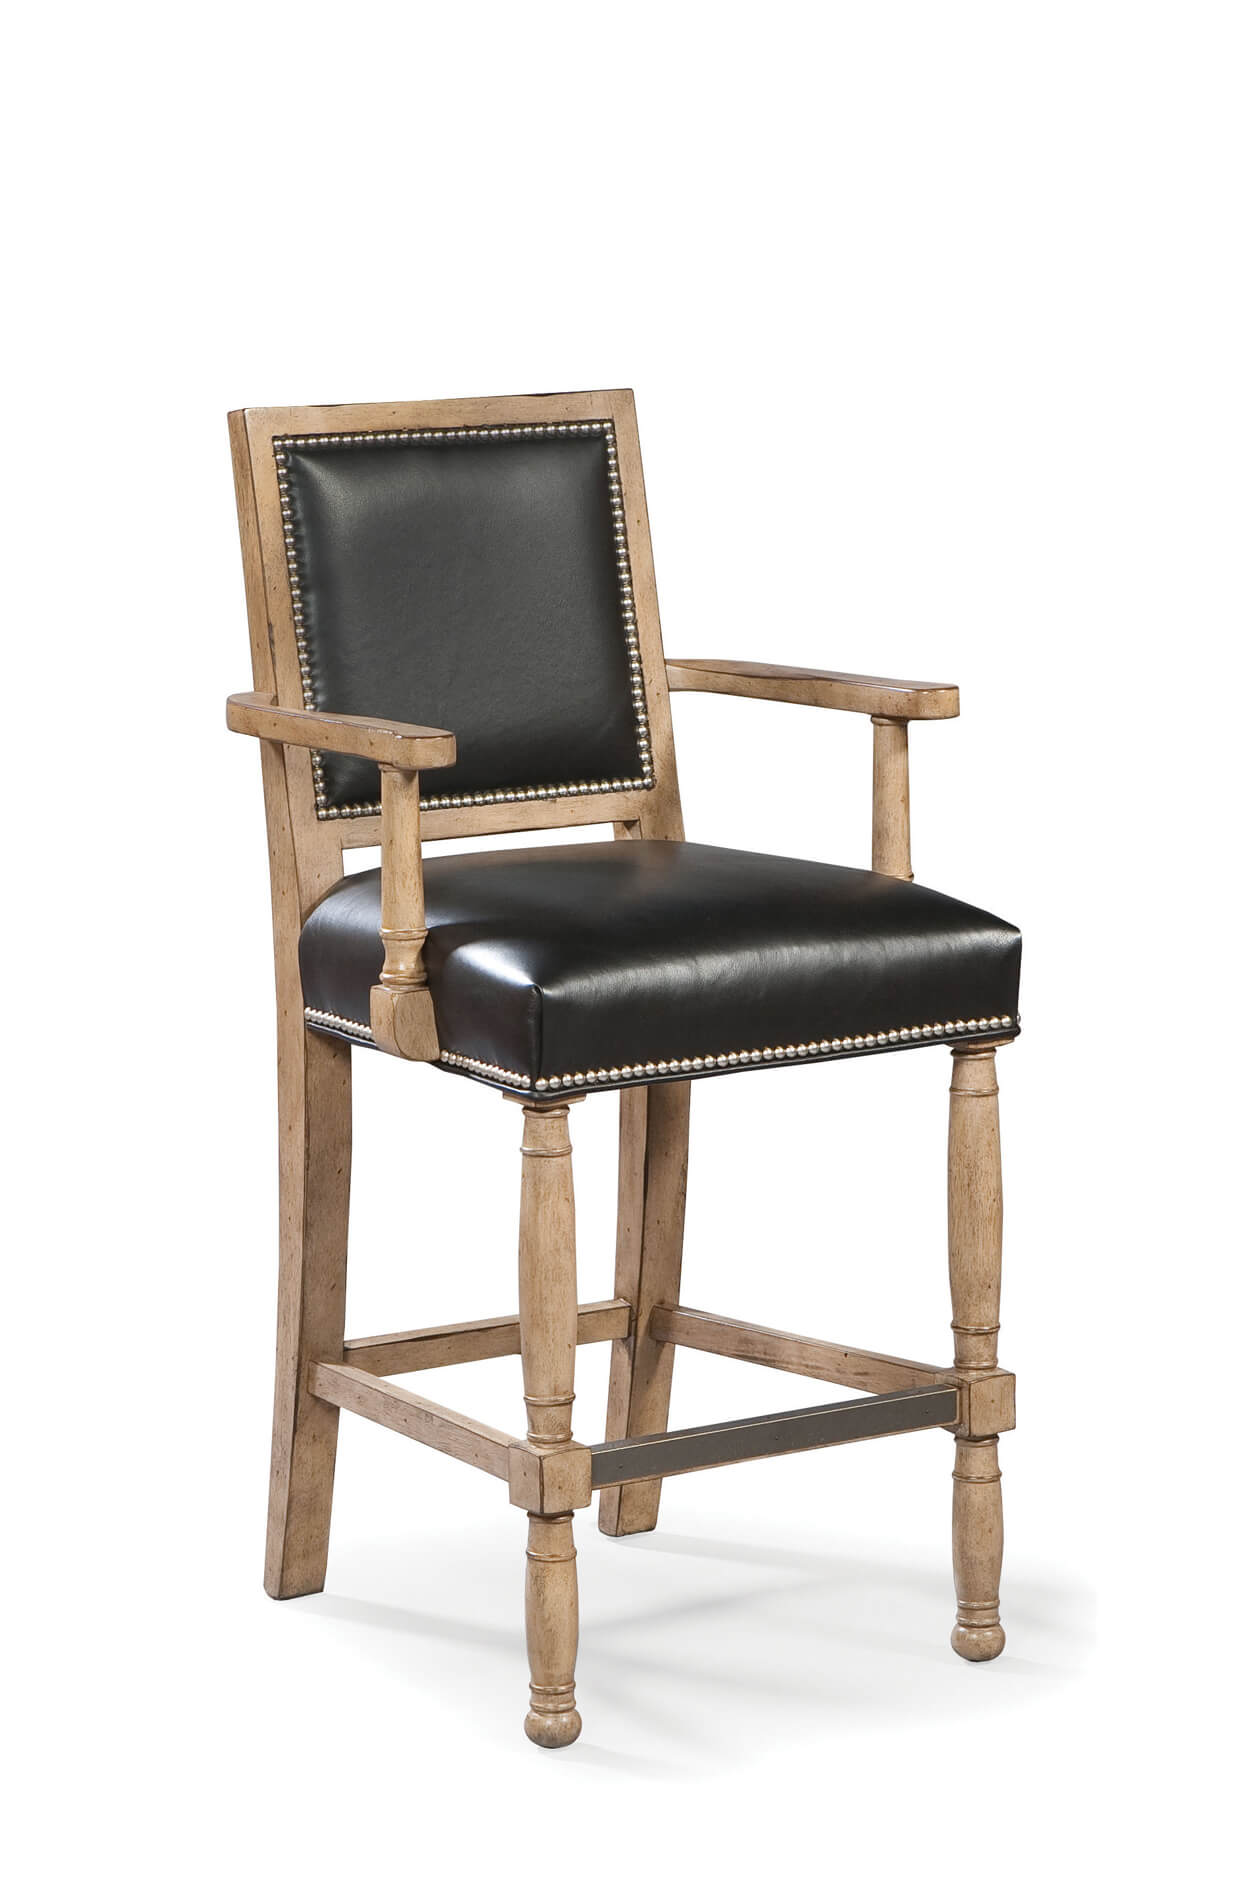 Ramsey Wooden Counter Stool with Arms